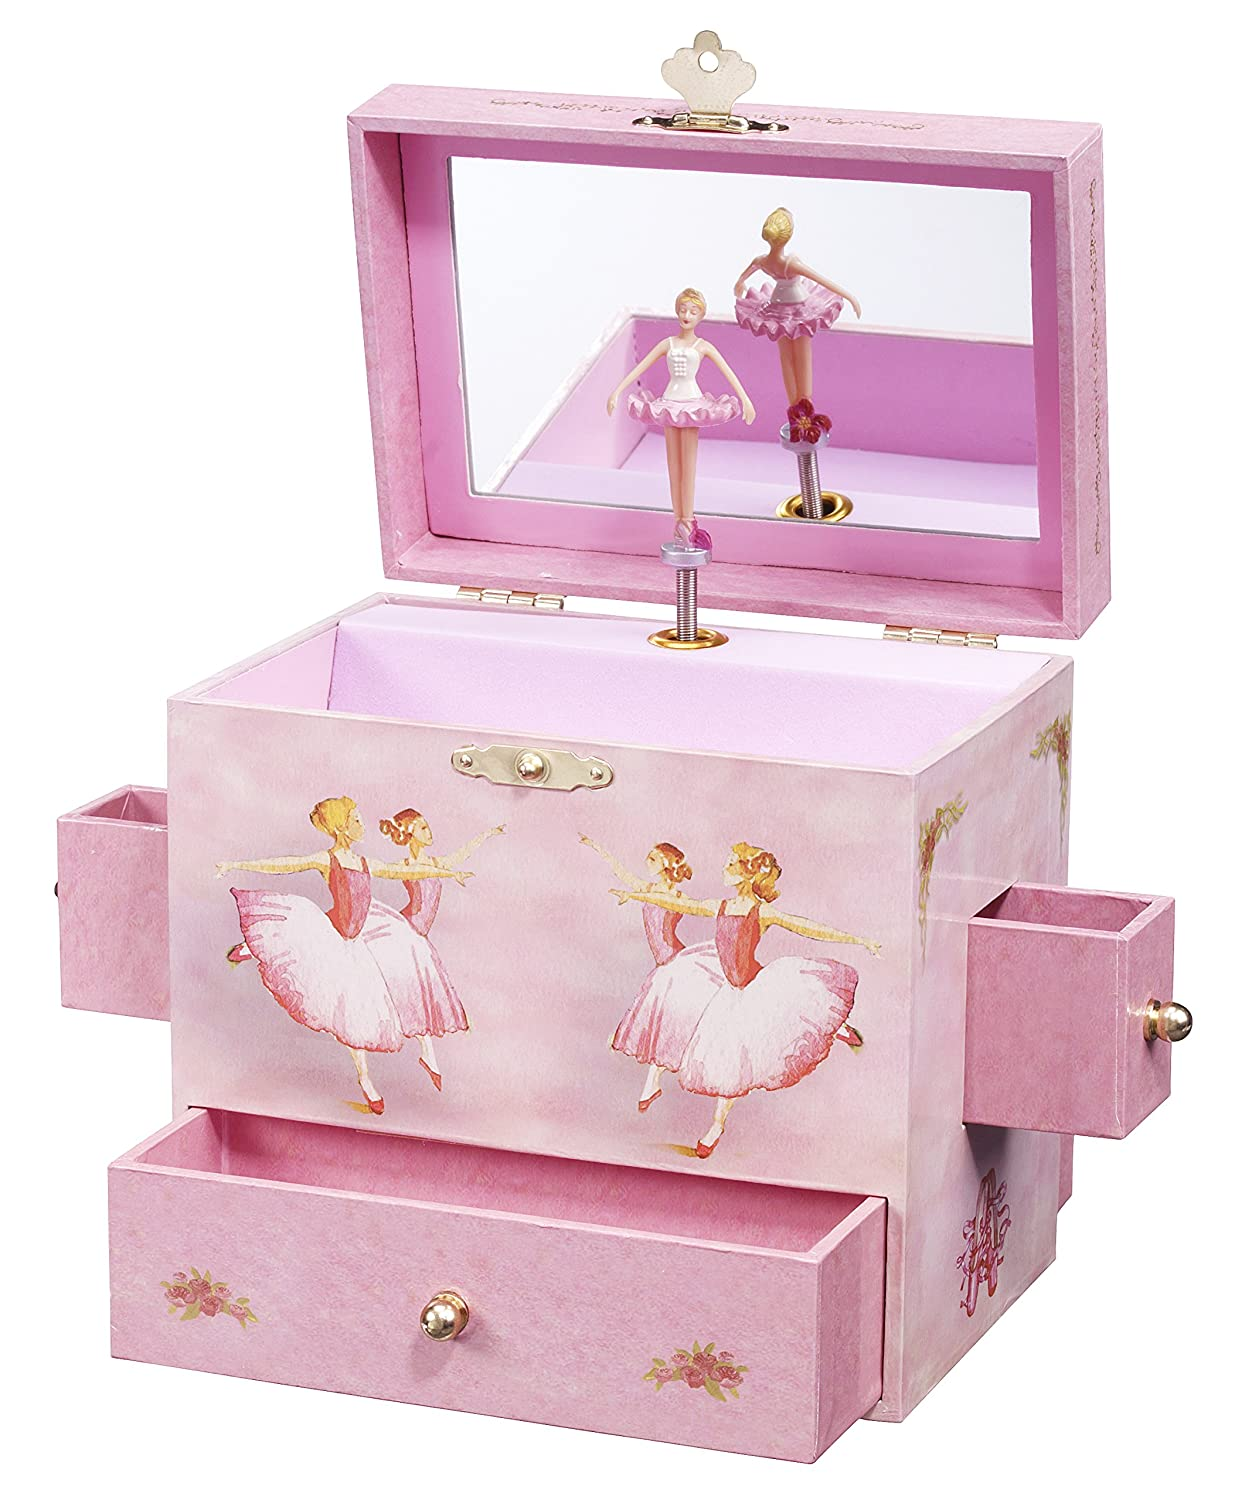 a pink cute music box for your little girl.